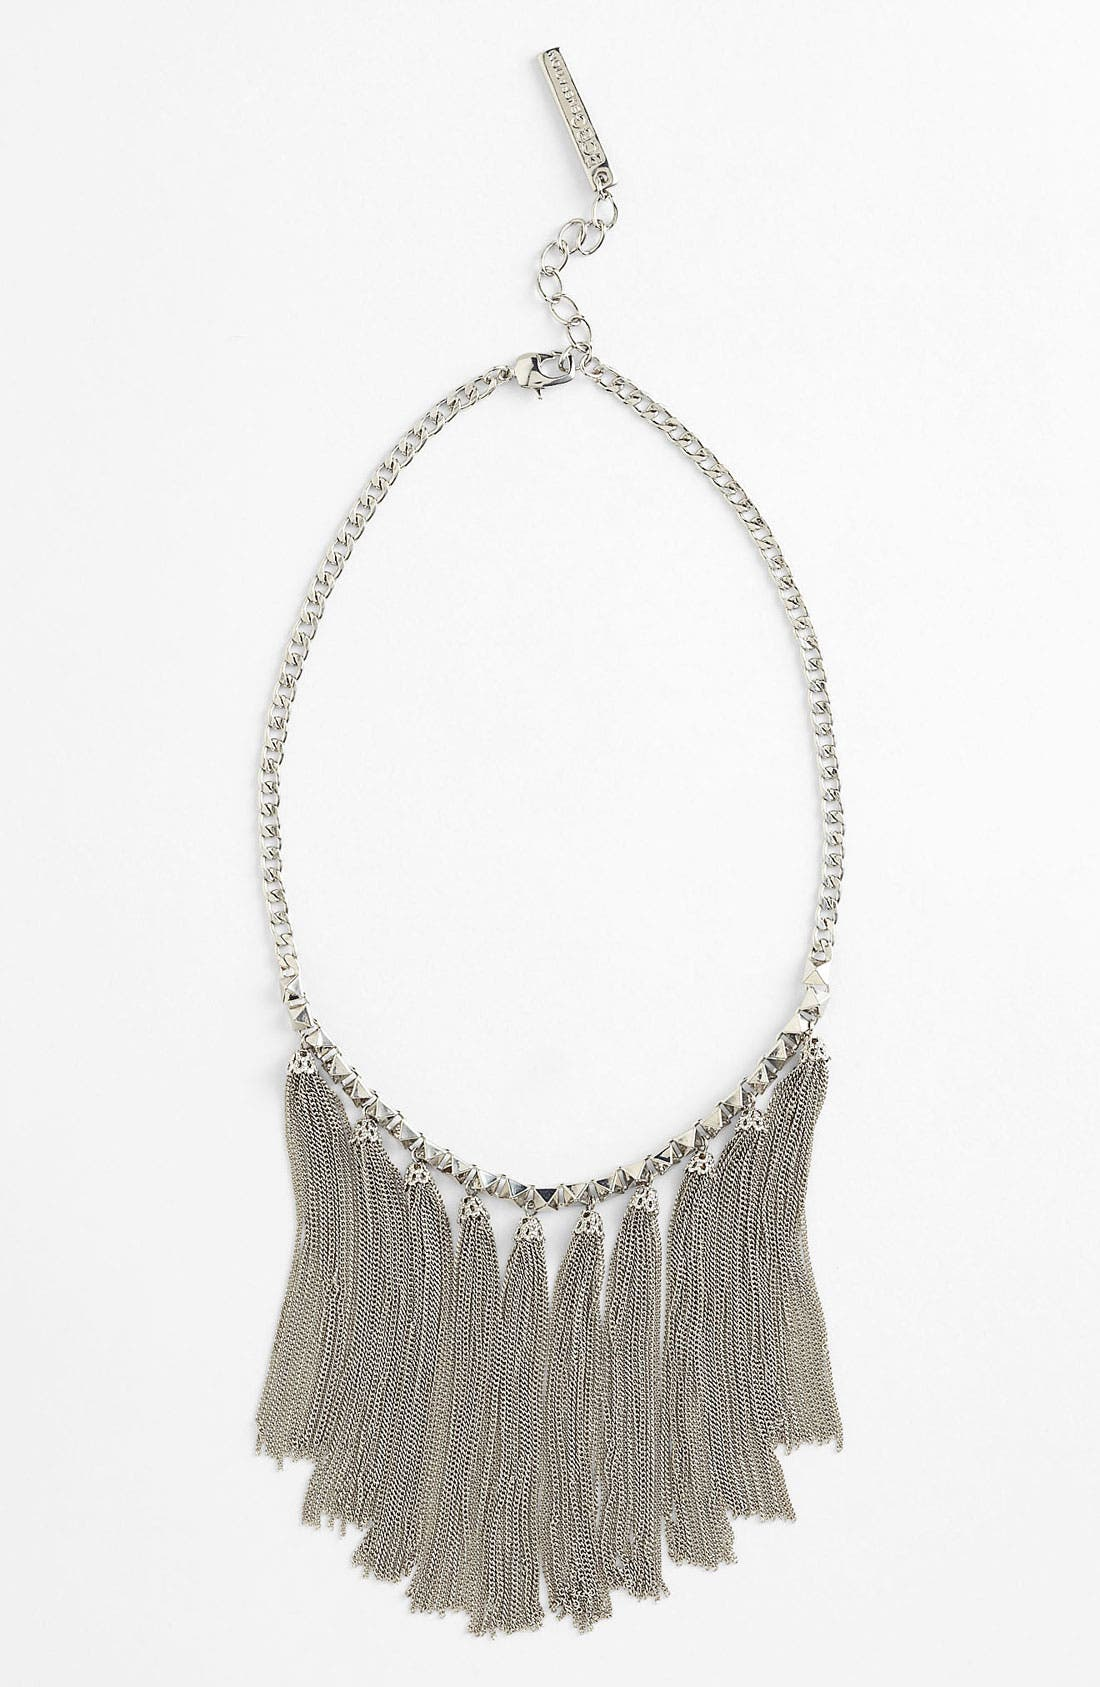 Main Image - BCBGeneration 'The Standard' Tassel Necklace